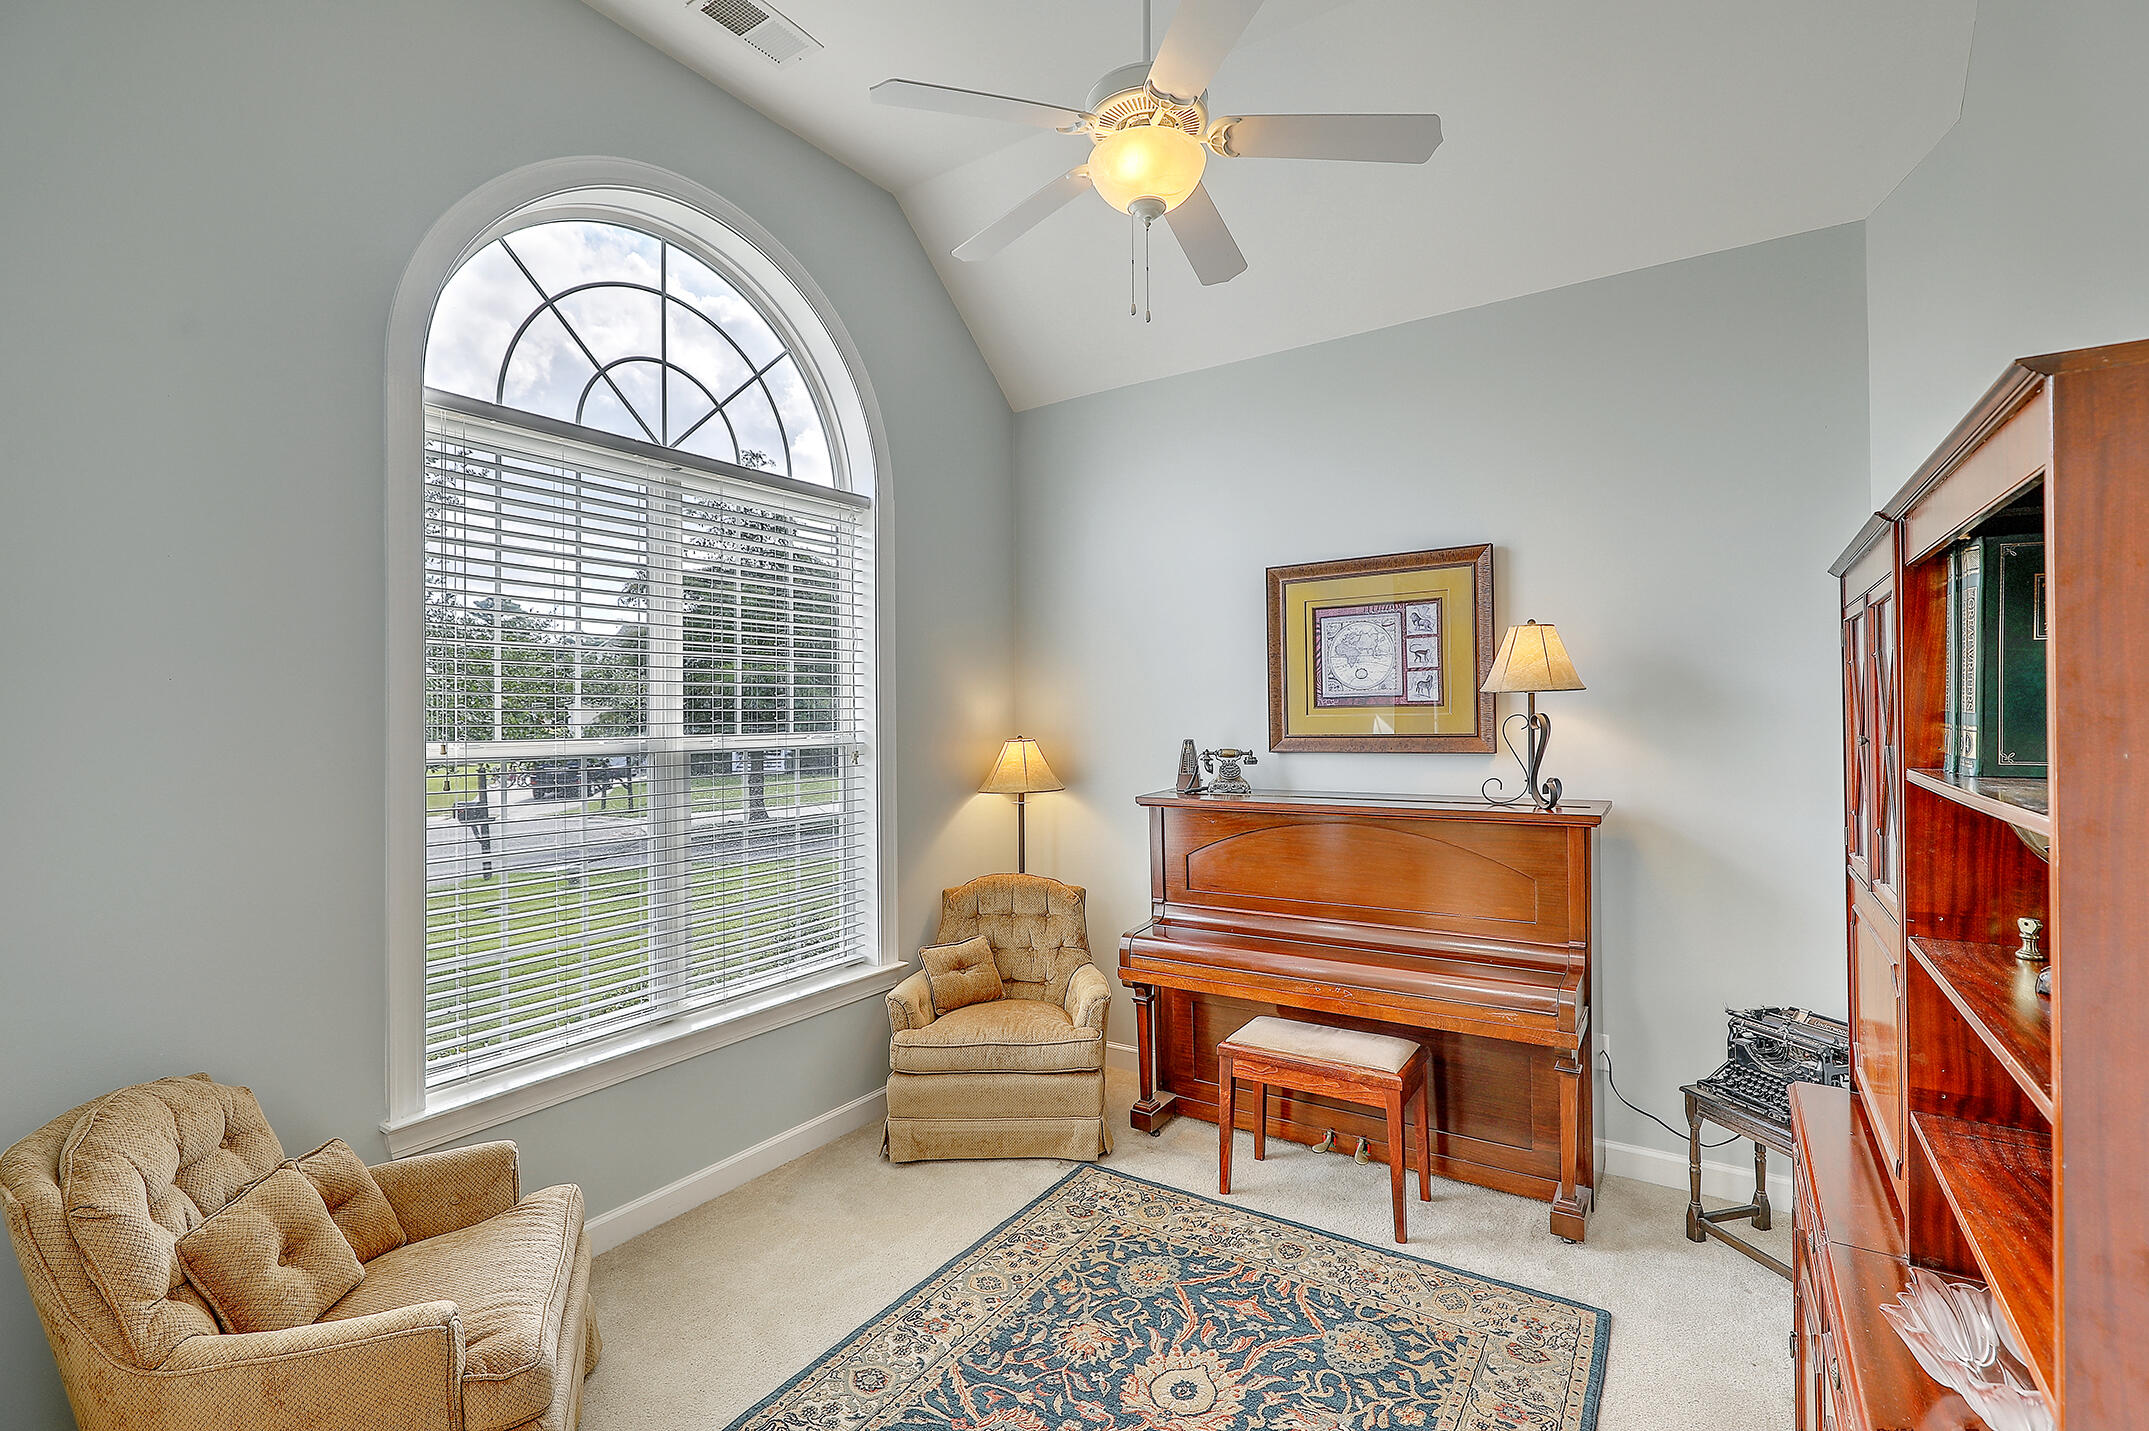 Dunes West Homes For Sale - 1704 Jewelwood, Mount Pleasant, SC - 44